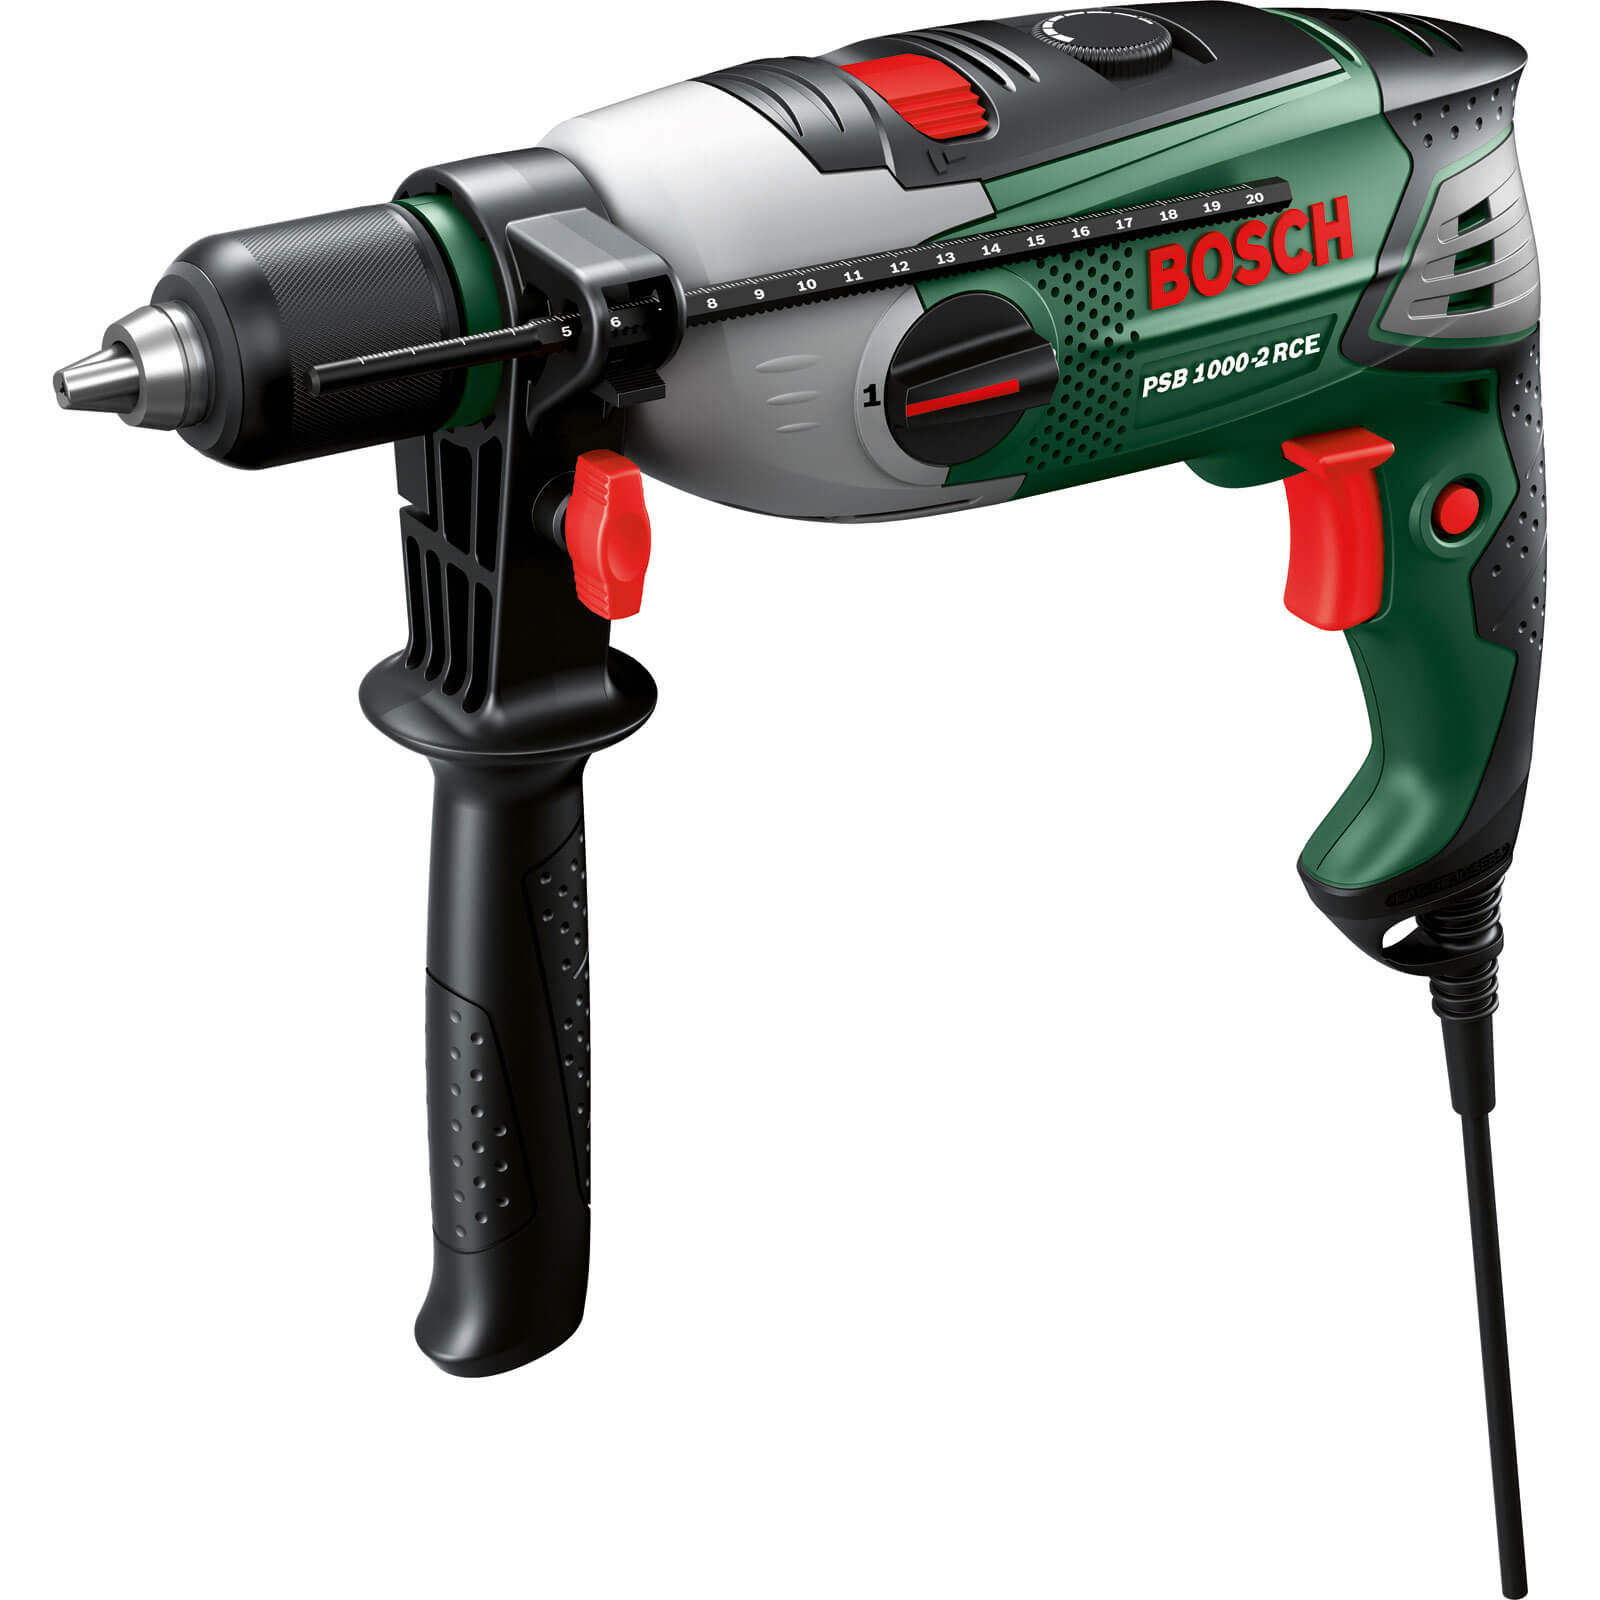 Bosch PSB 1000-2 RCE Compact Electric Hammer Drill 1000w 240v